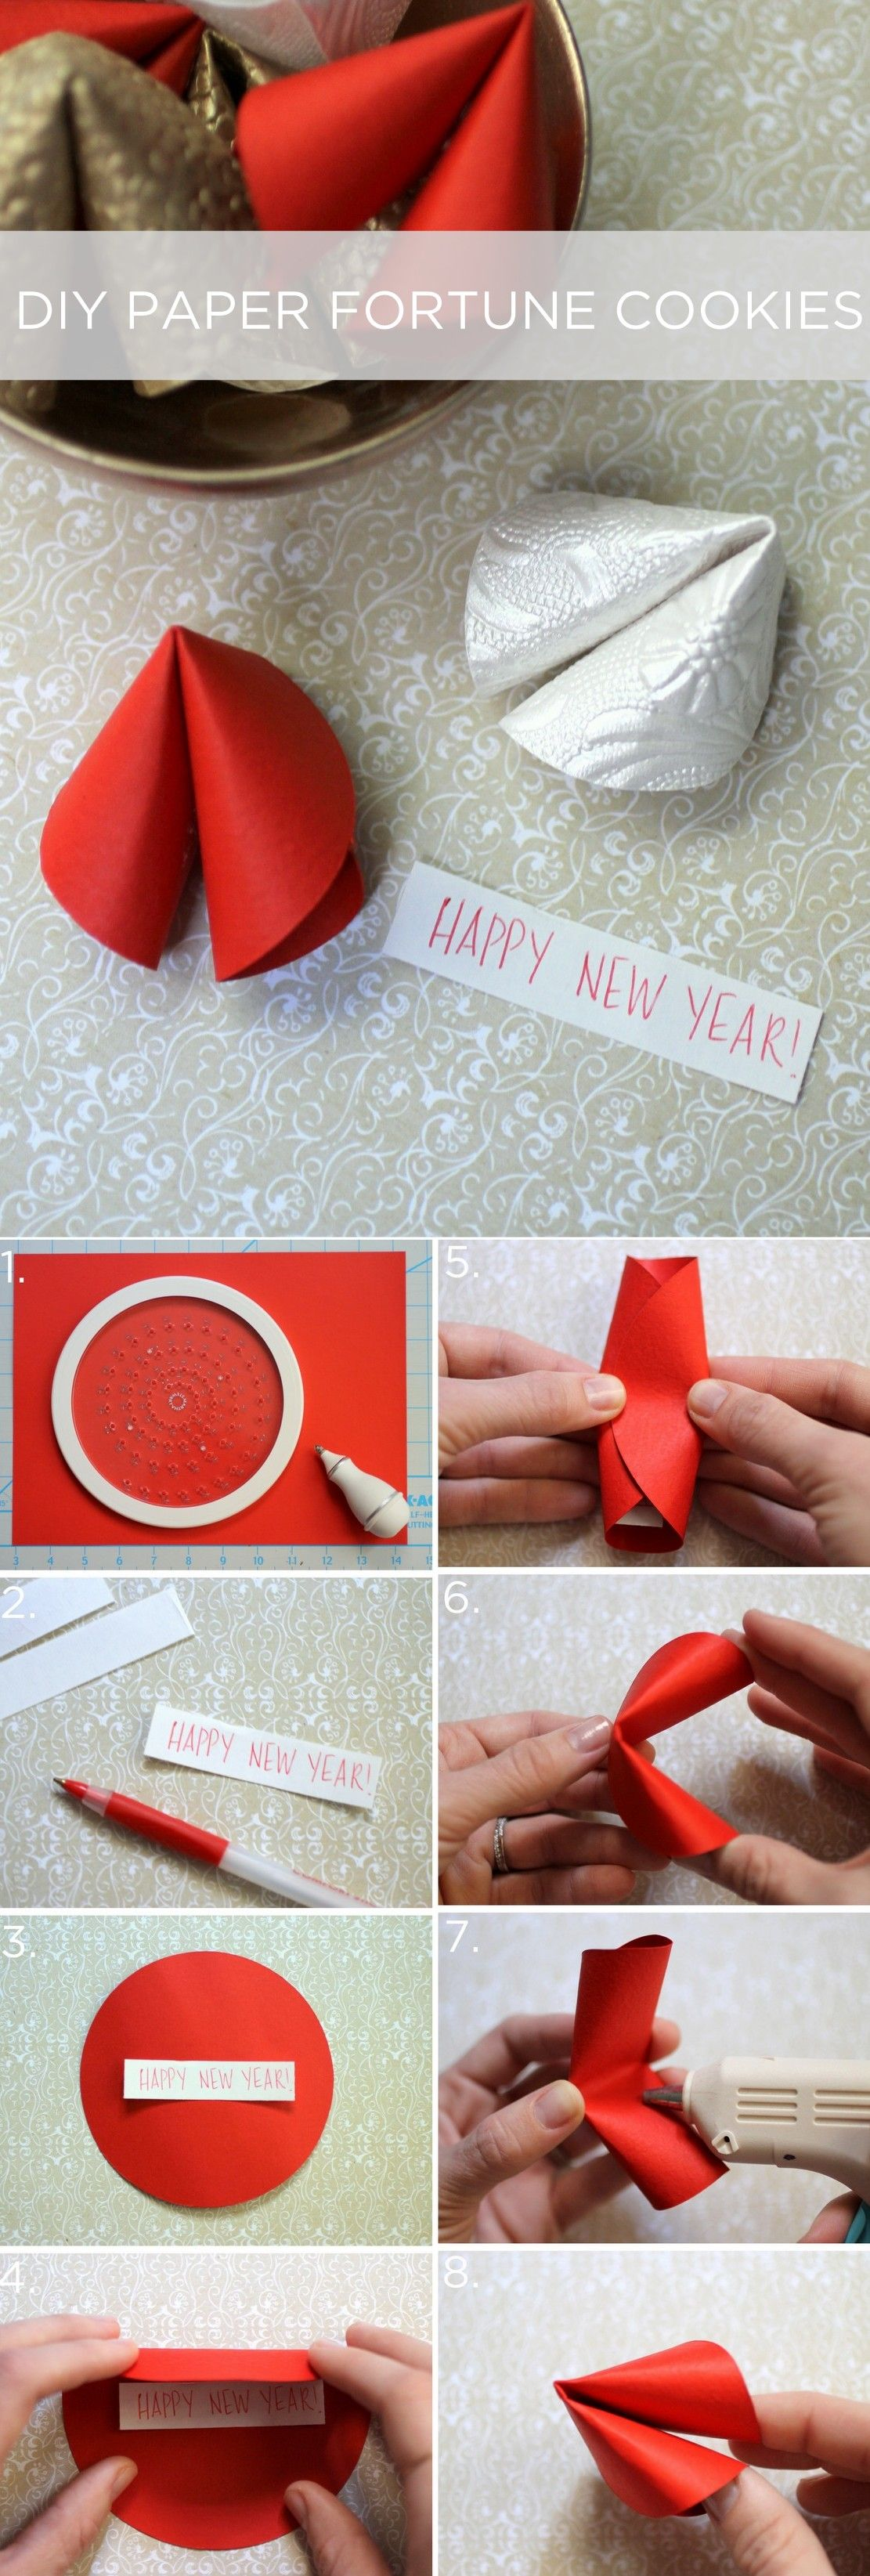 Chinese New Year Diy Fortune Cookie Favors